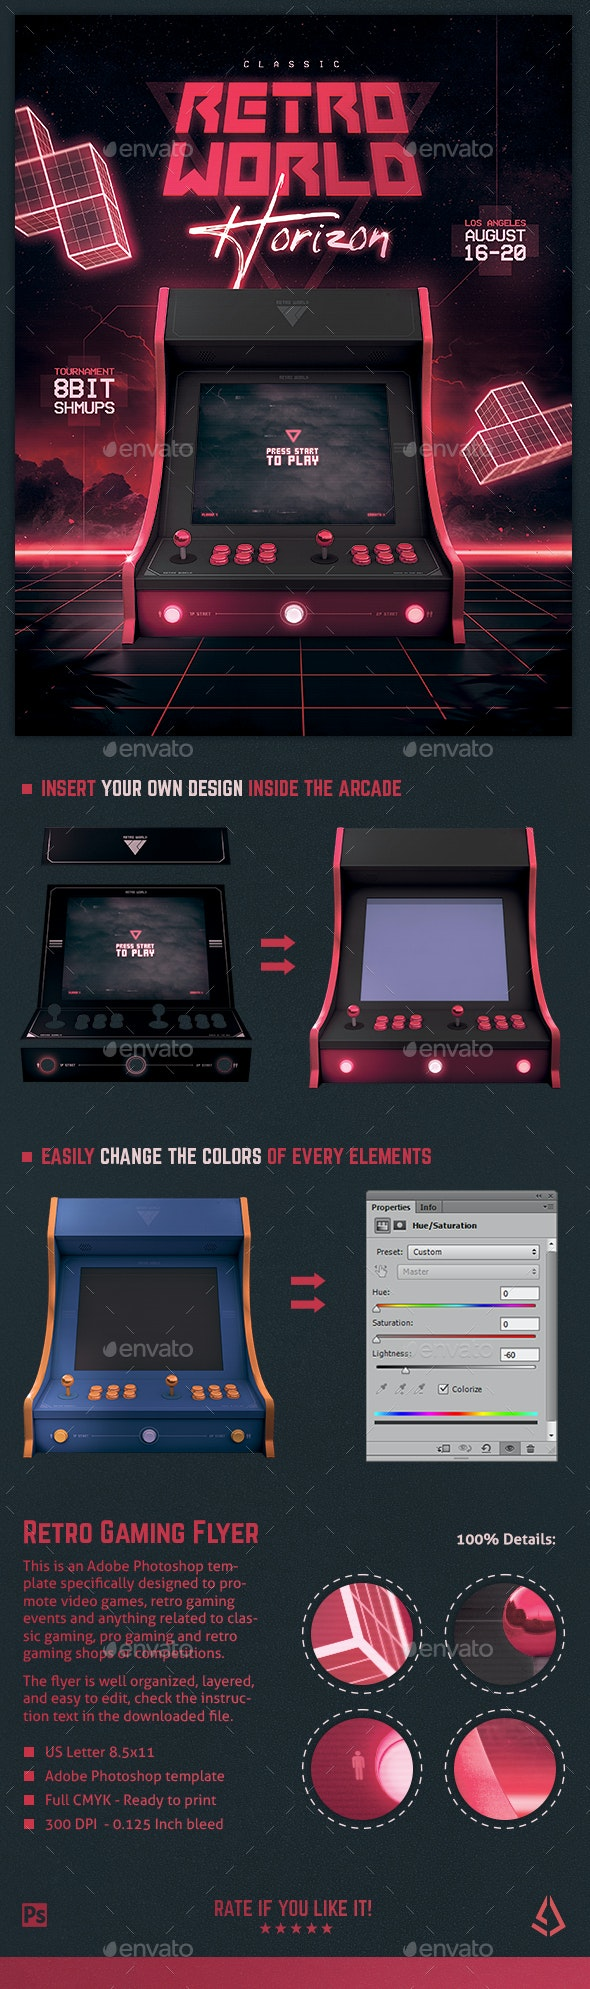 Video Games Flyer 80s Retro Gaming Arcade Mock Up Poster